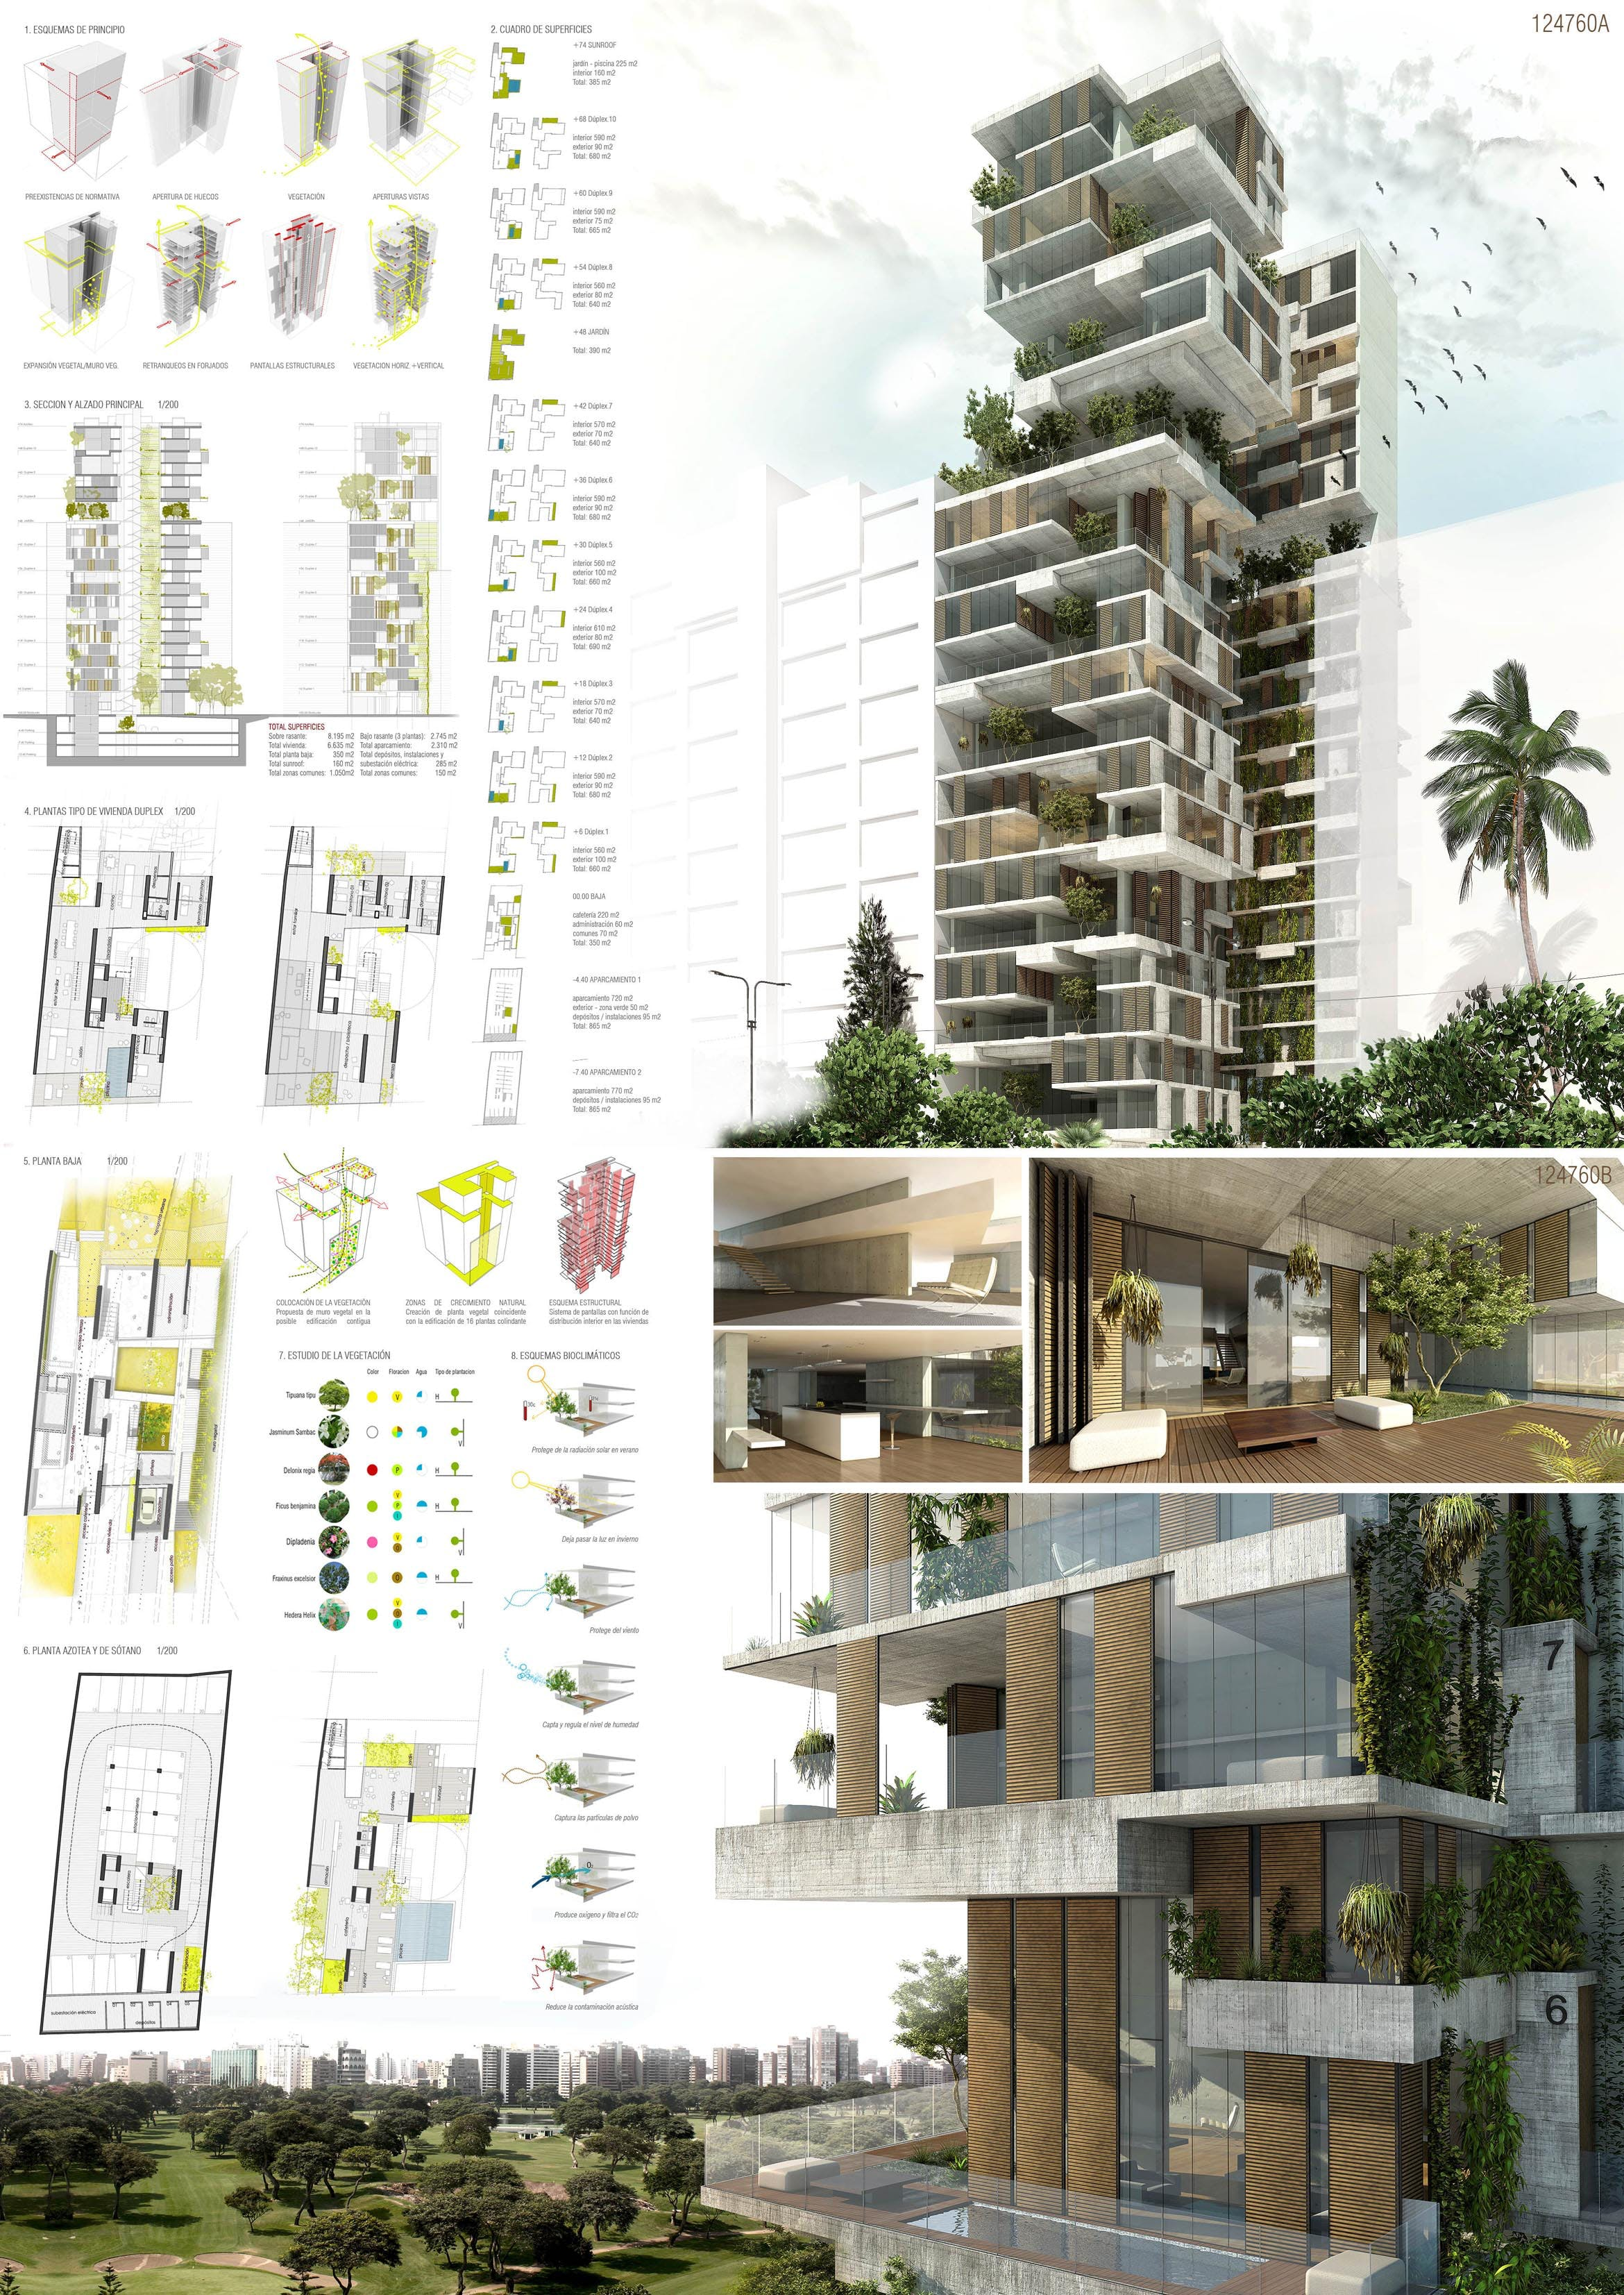 Skycondos Competition In Lima Per 250 Honourable Mention